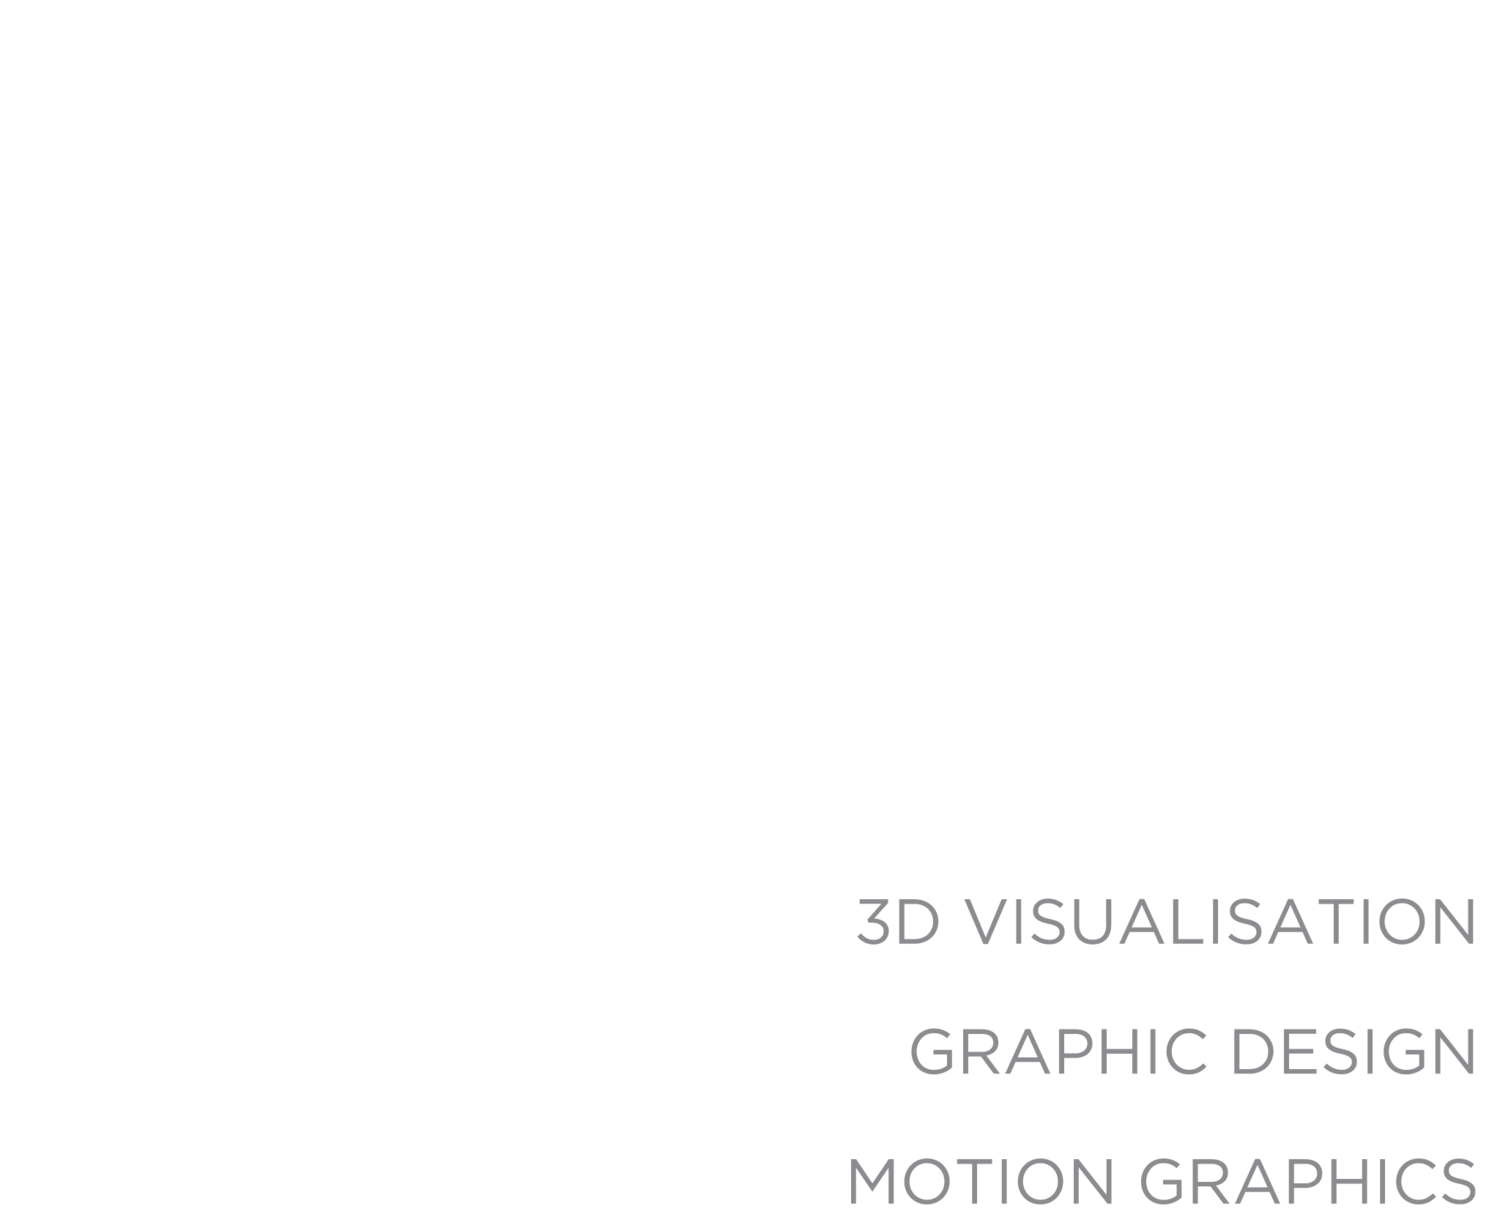 Scott Ramsay Design Ltd